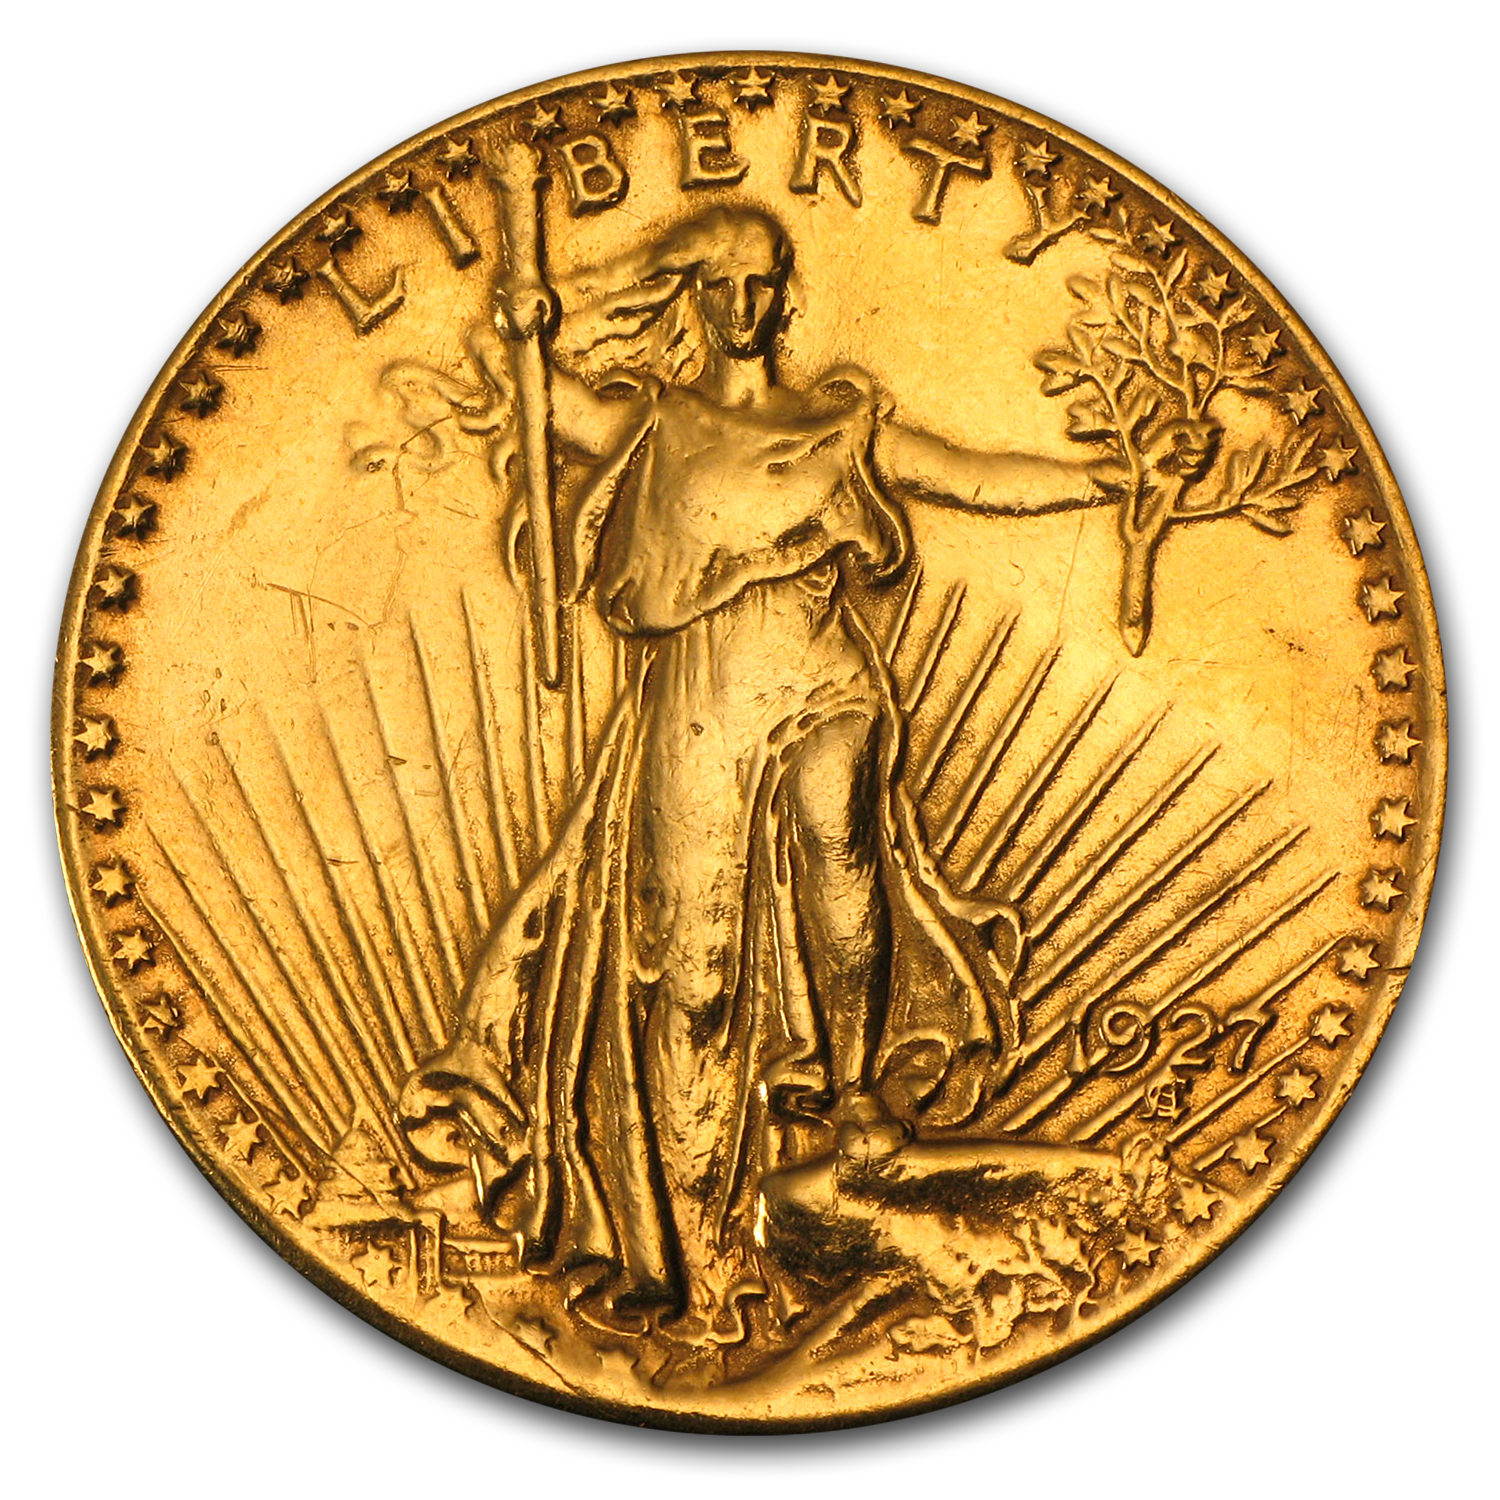 1927 $20 St. Gaudens Gold Double Eagle - Love Token - W L P